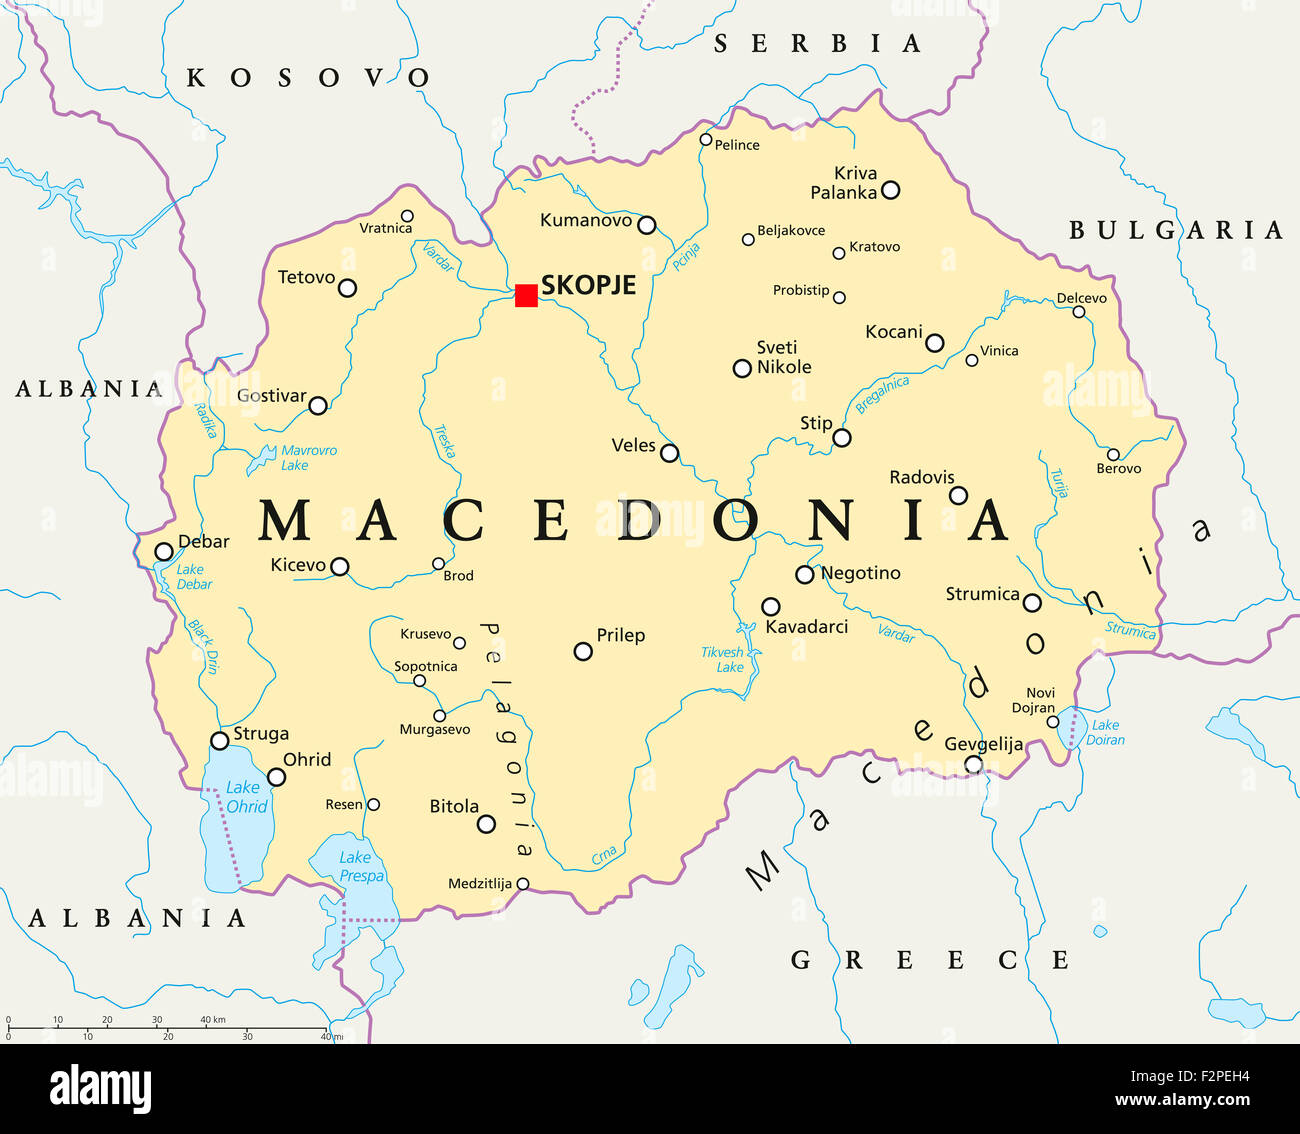 Macedonia political map with capital skopje national borders macedonia political map with capital skopje national borders important cities rivers and lakes publicscrutiny Image collections